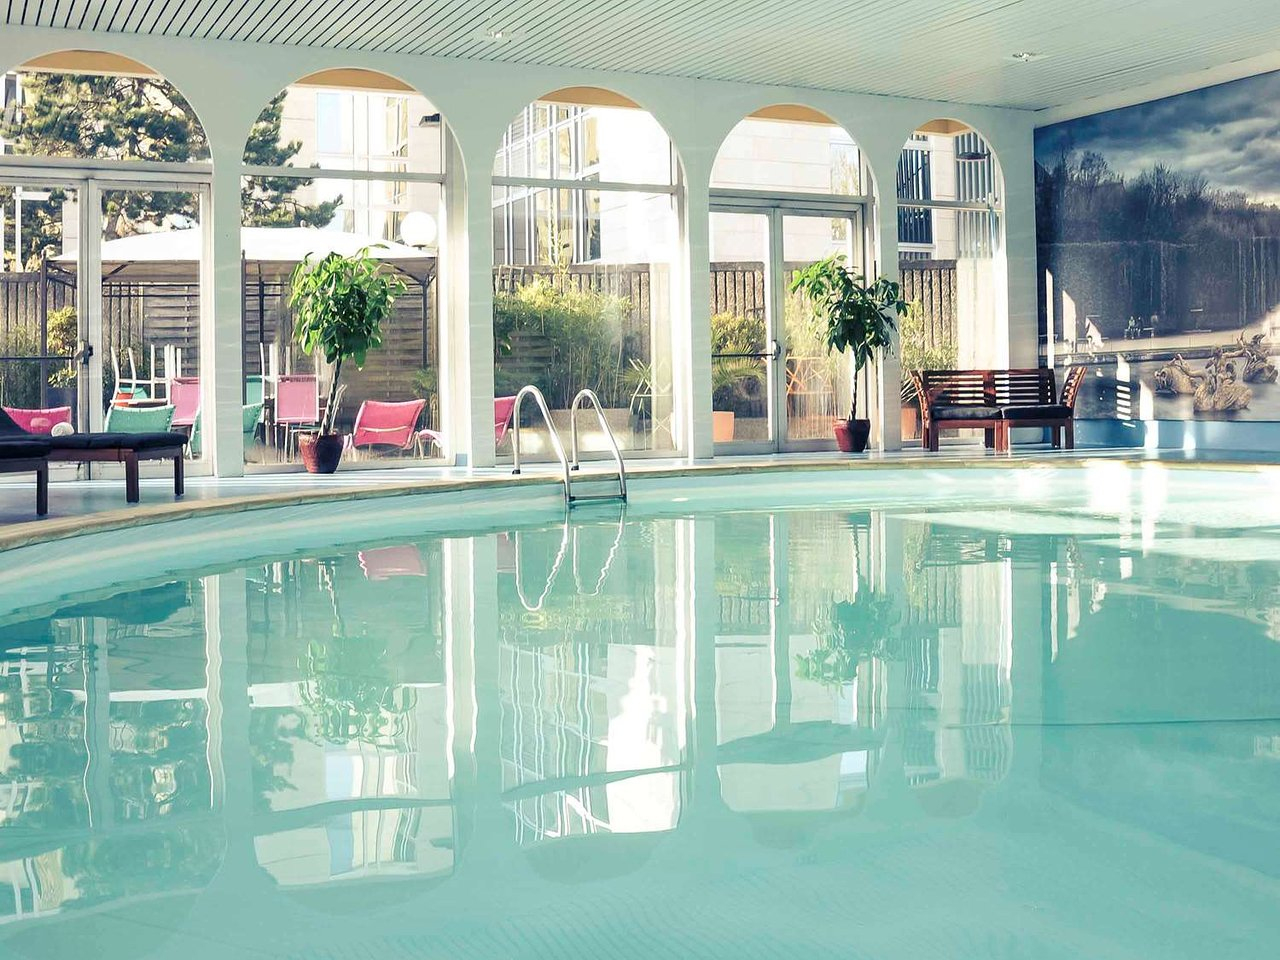 The 5 Best Hotels In Velizy-Villacoublay For 2020 (From $48 ... serapportantà Piscine De Goussainville